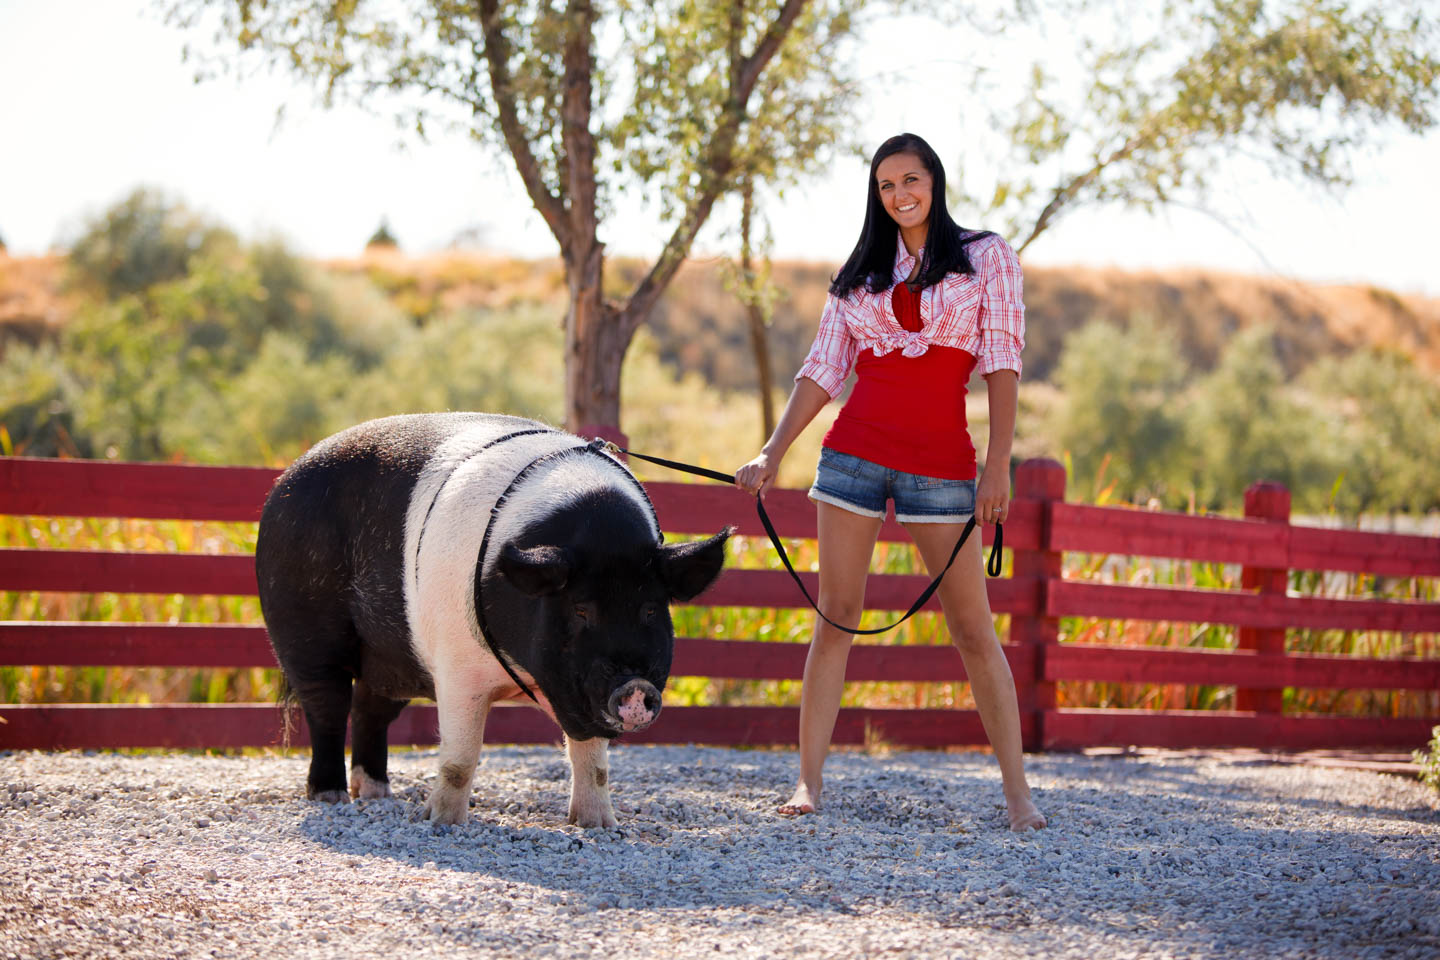 Sally the Pig and Jessica at Gardner Village's petting zoo